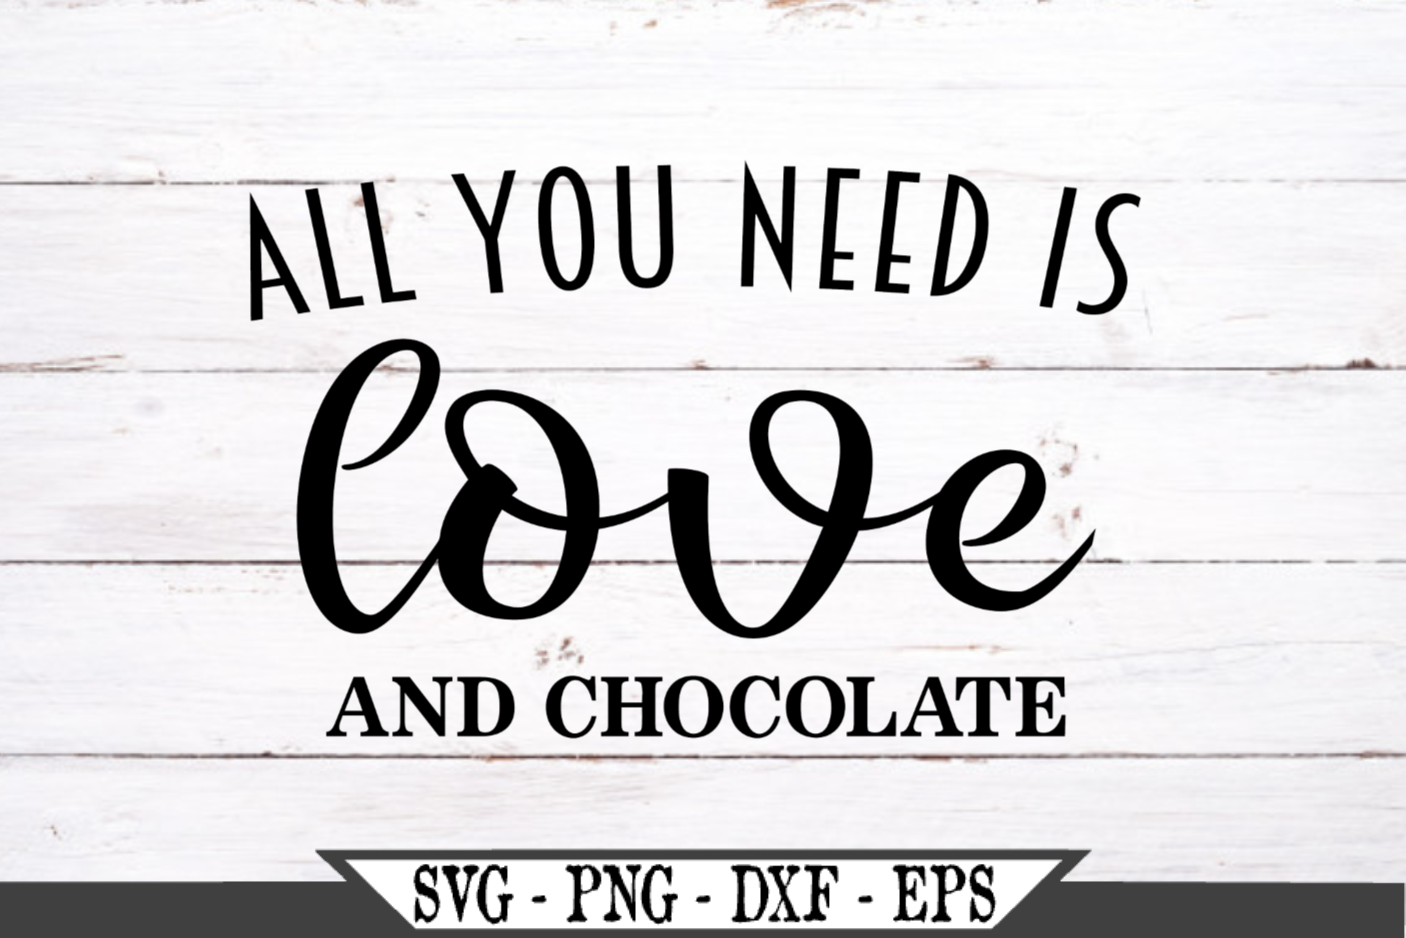 All You Need Is Love And Chocolate SVG example image 2